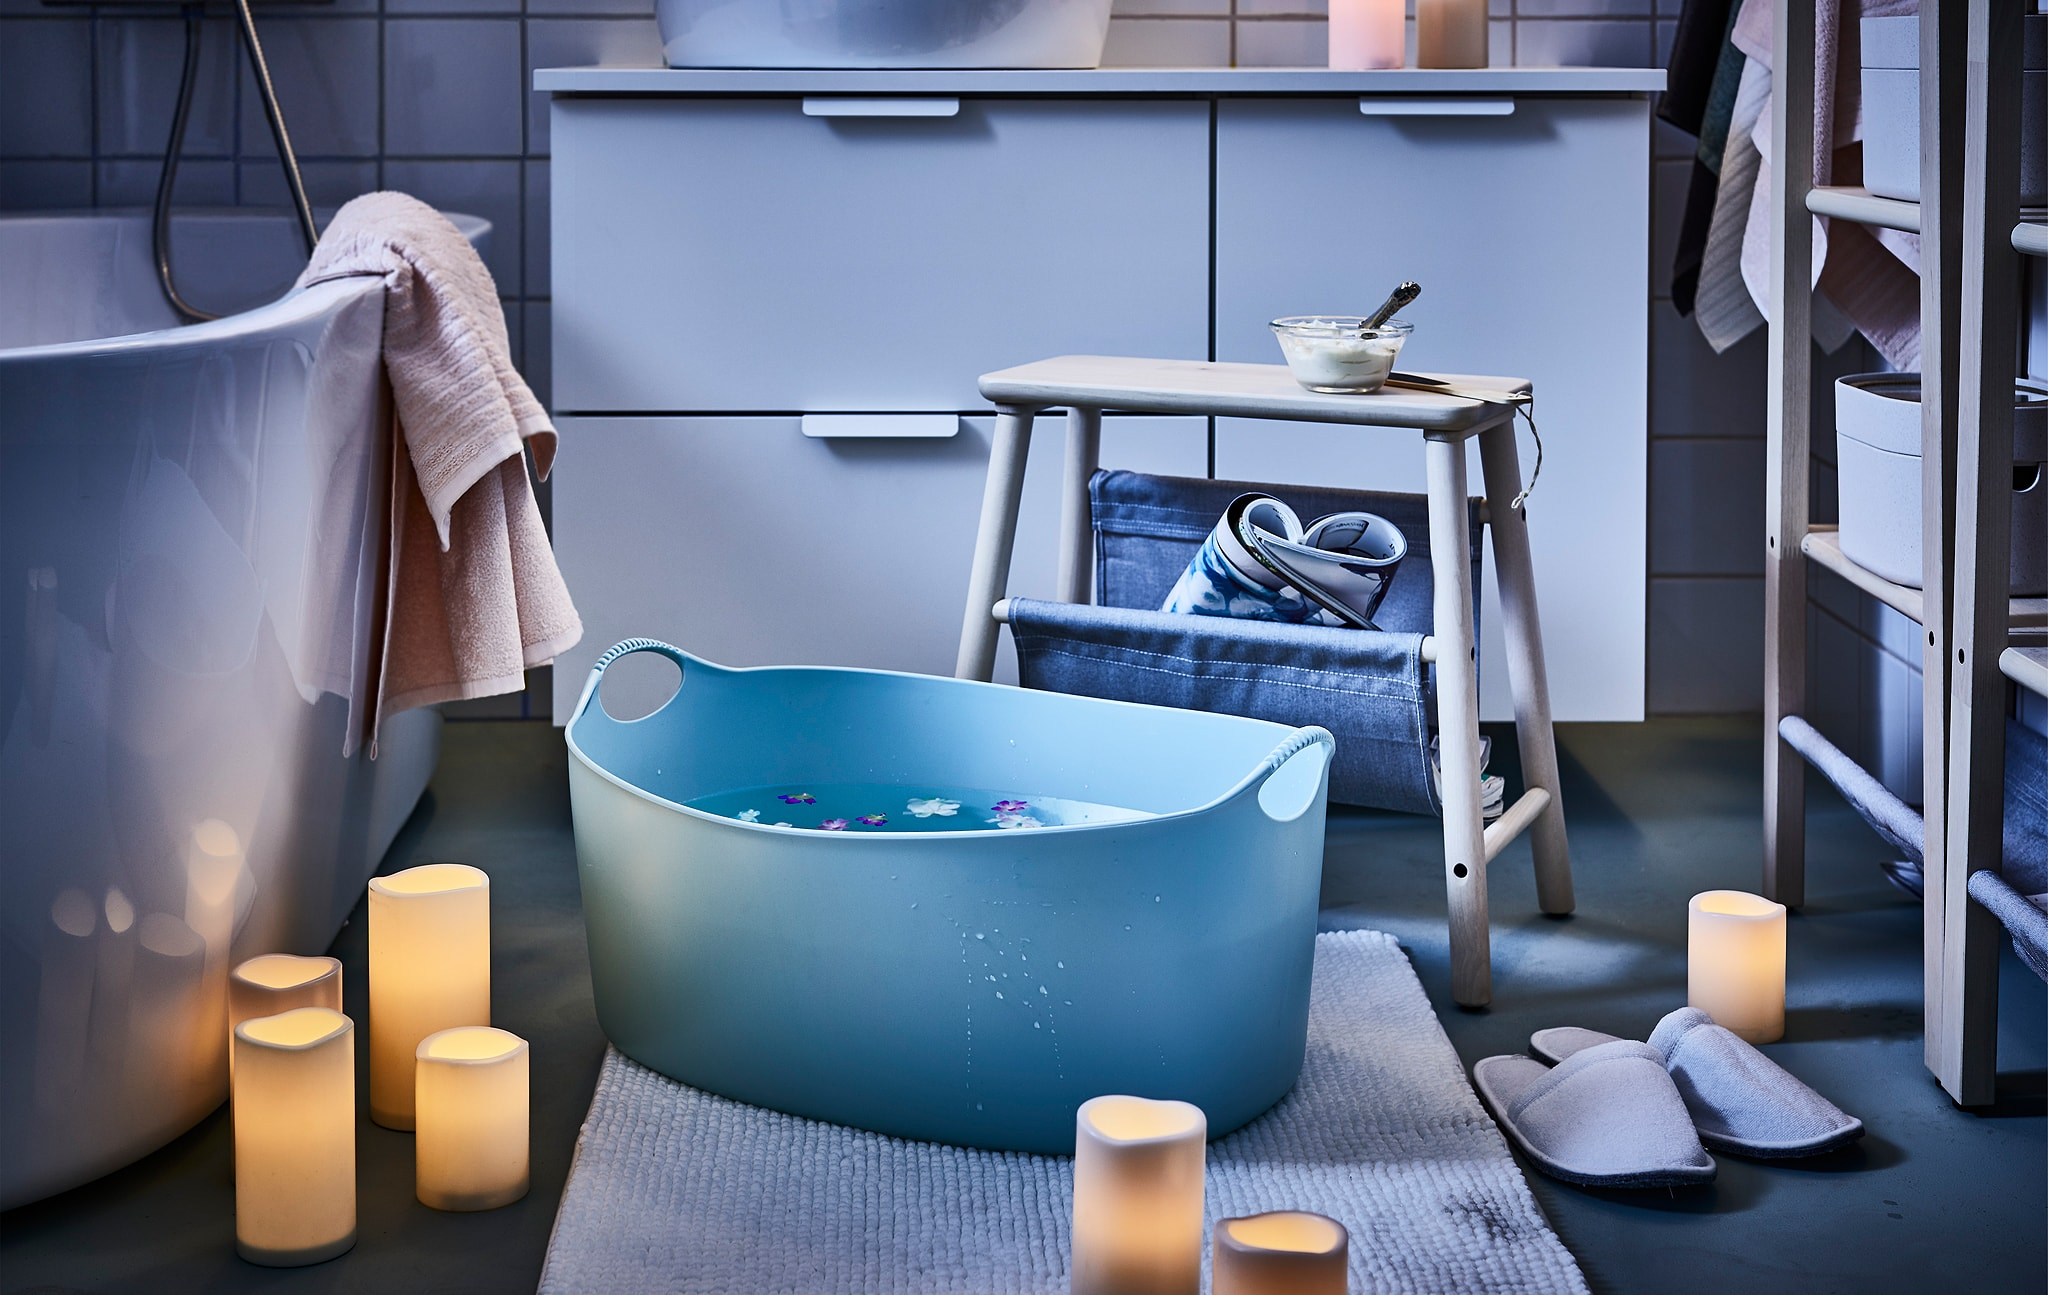 Turn your bathroom into a sanctuary for all senses